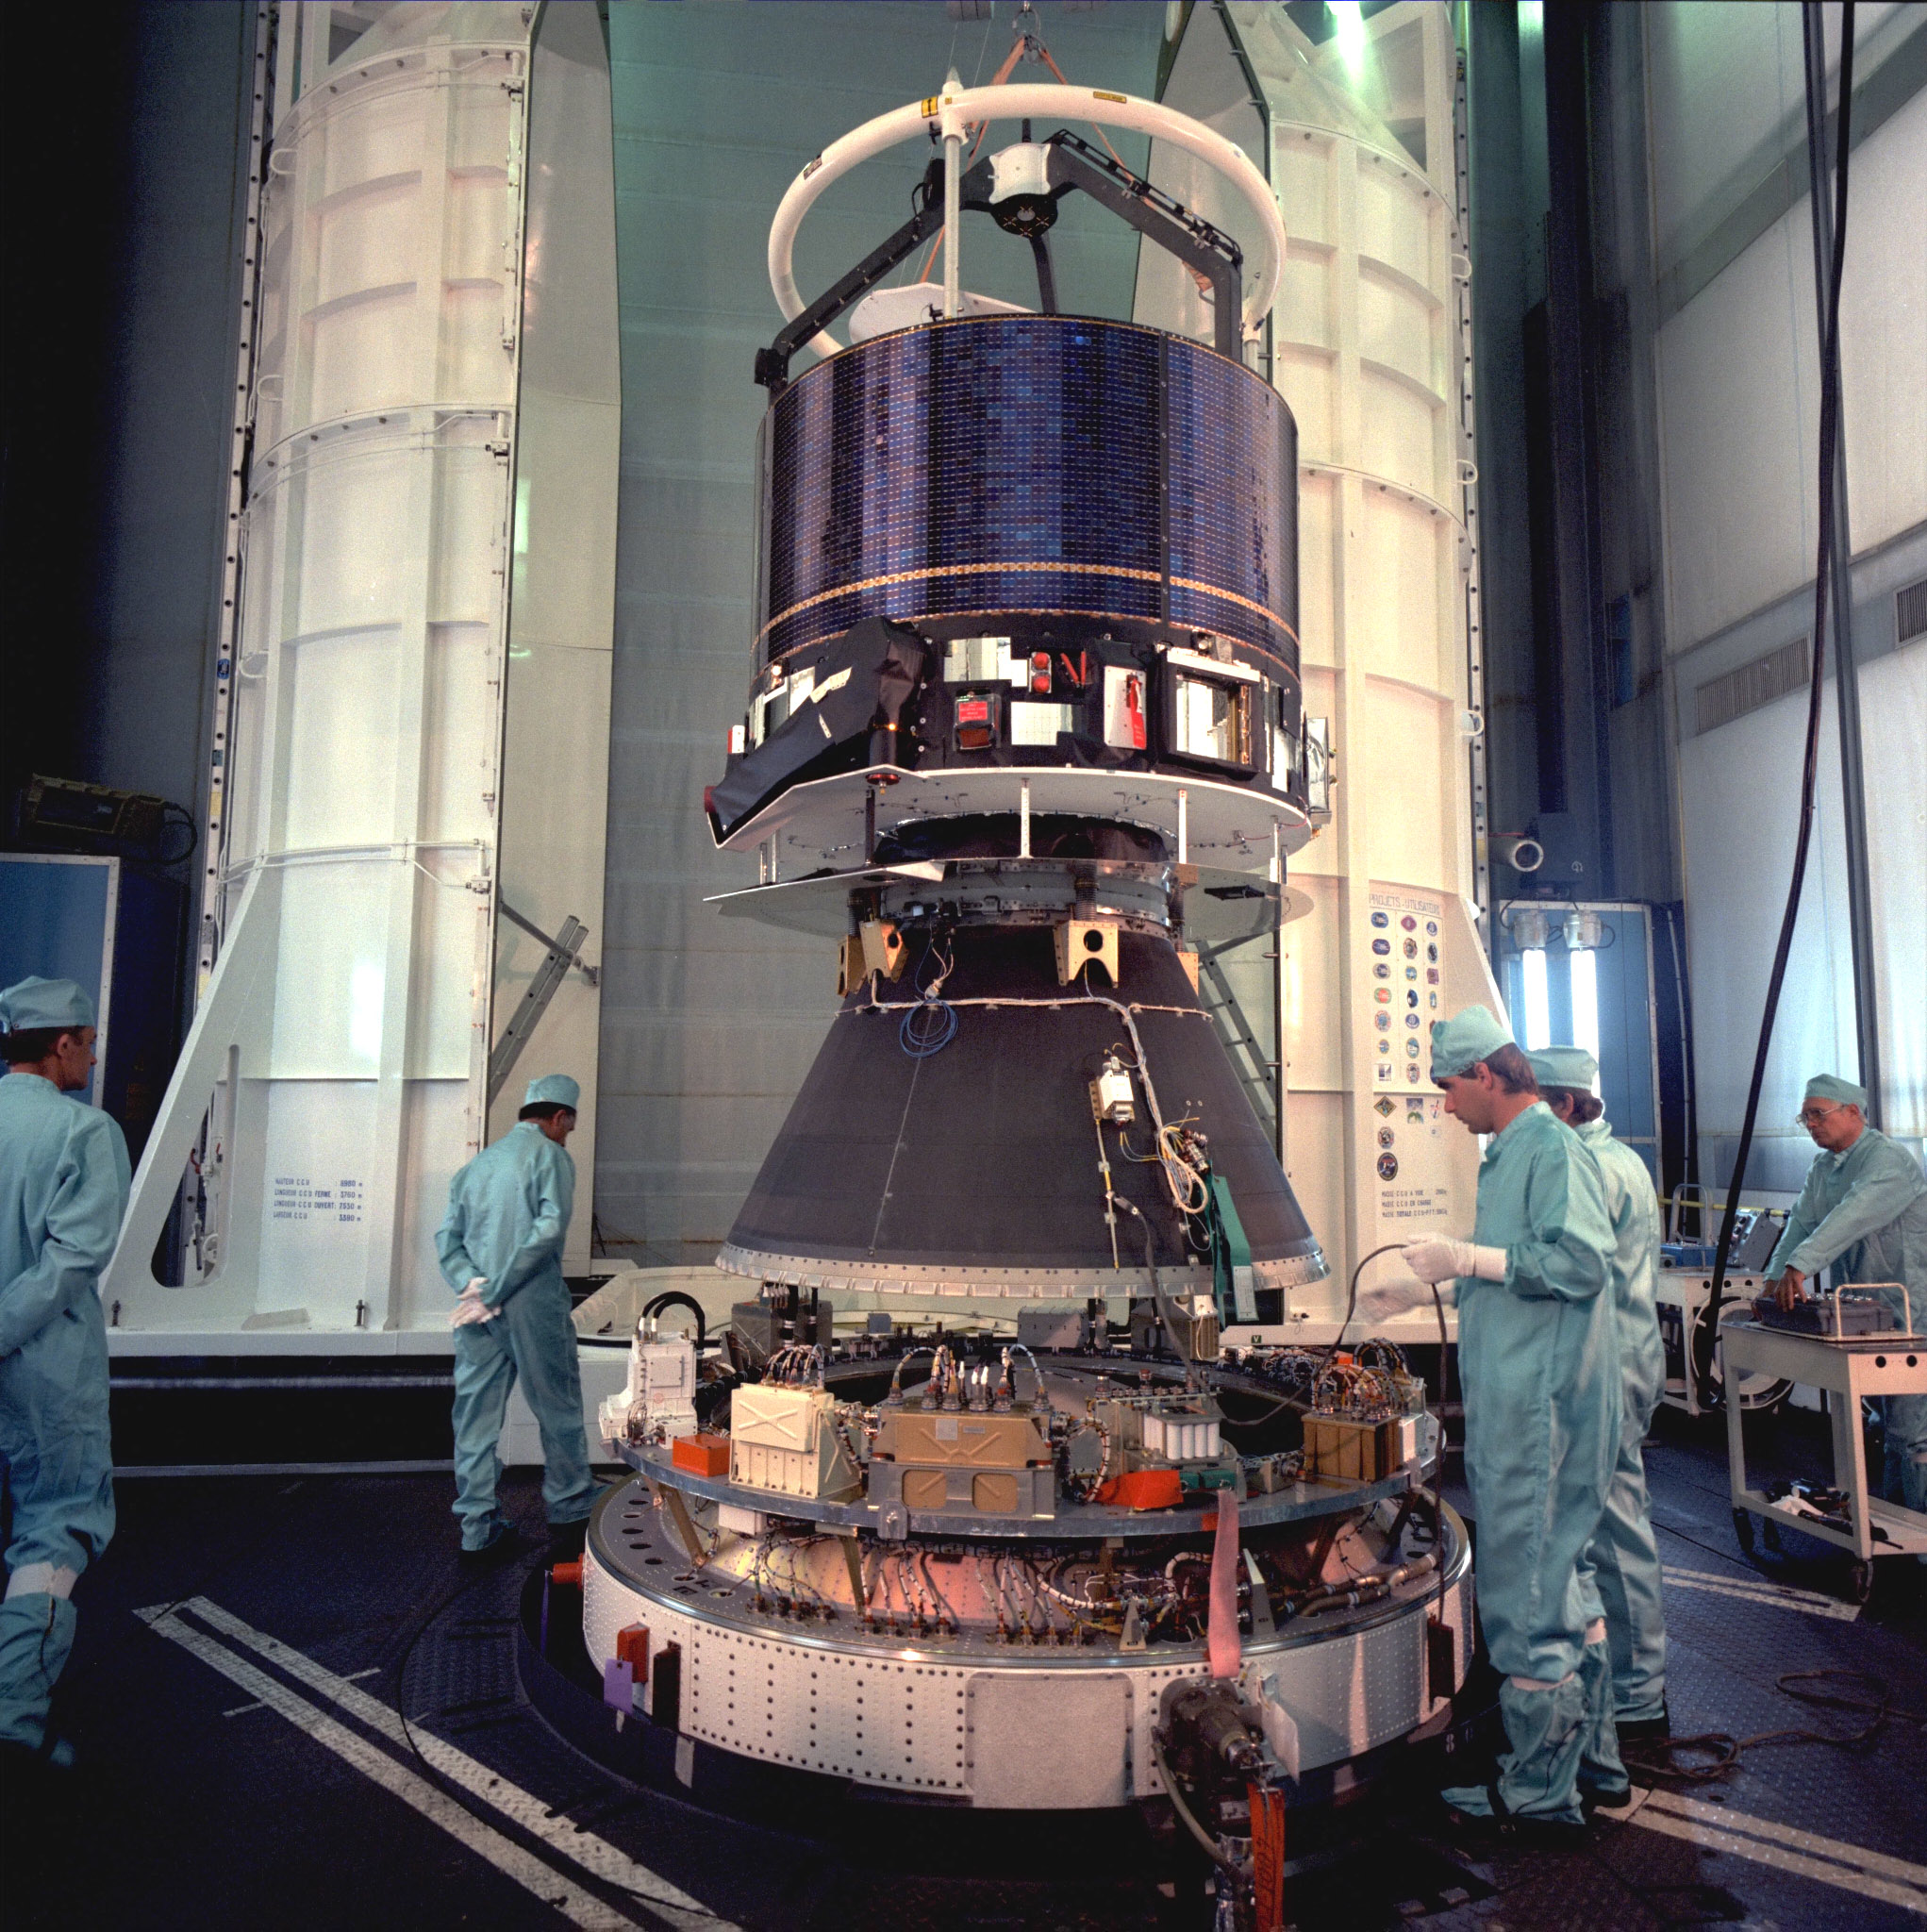 Space in Images - 2003 - 05 - Giotto launch preparations